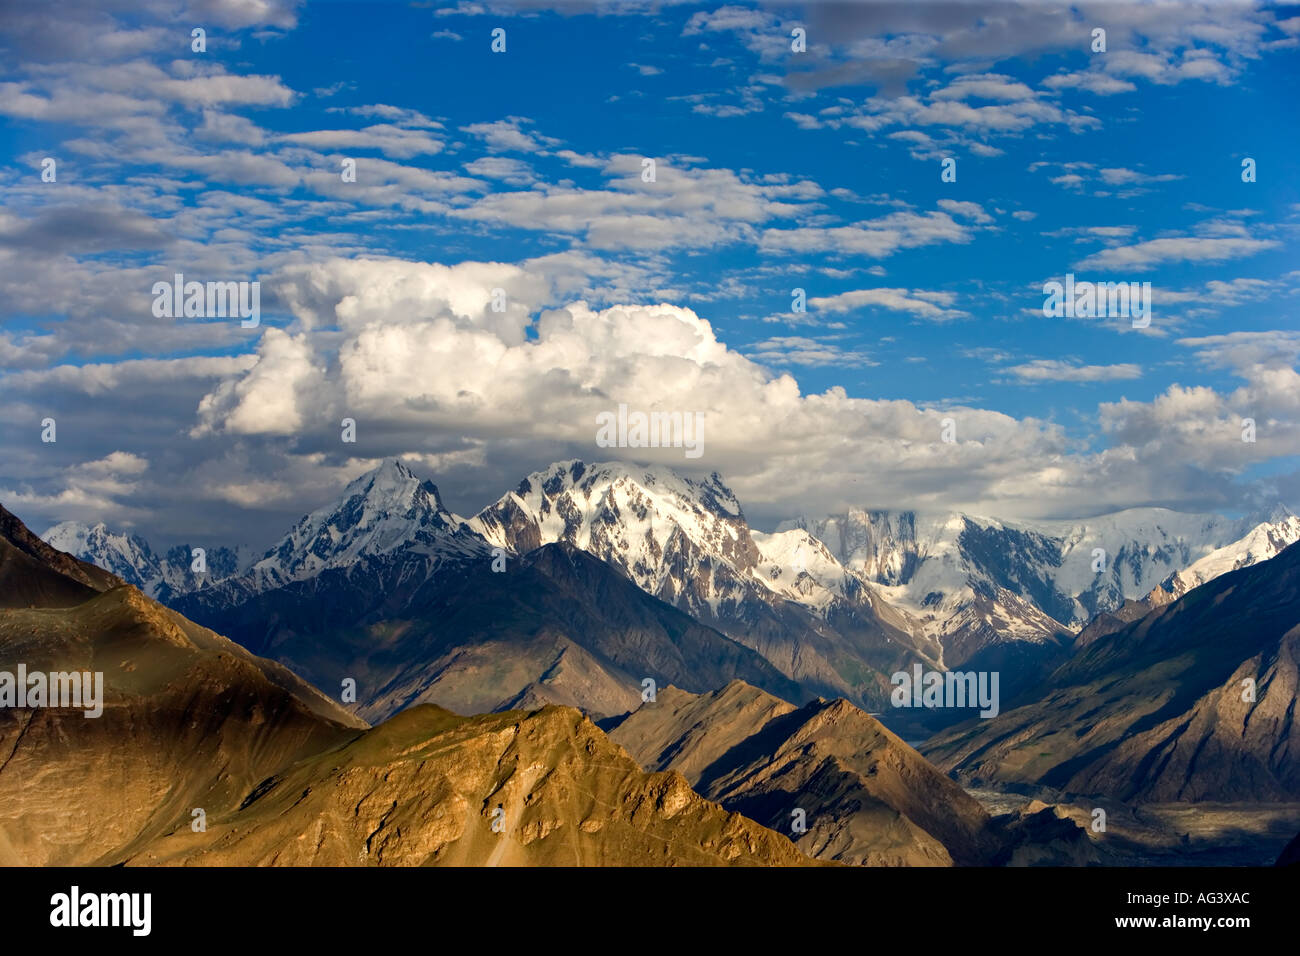 Spectacular mountain scenery of Hunza in Northern Pakistan - Stock Image